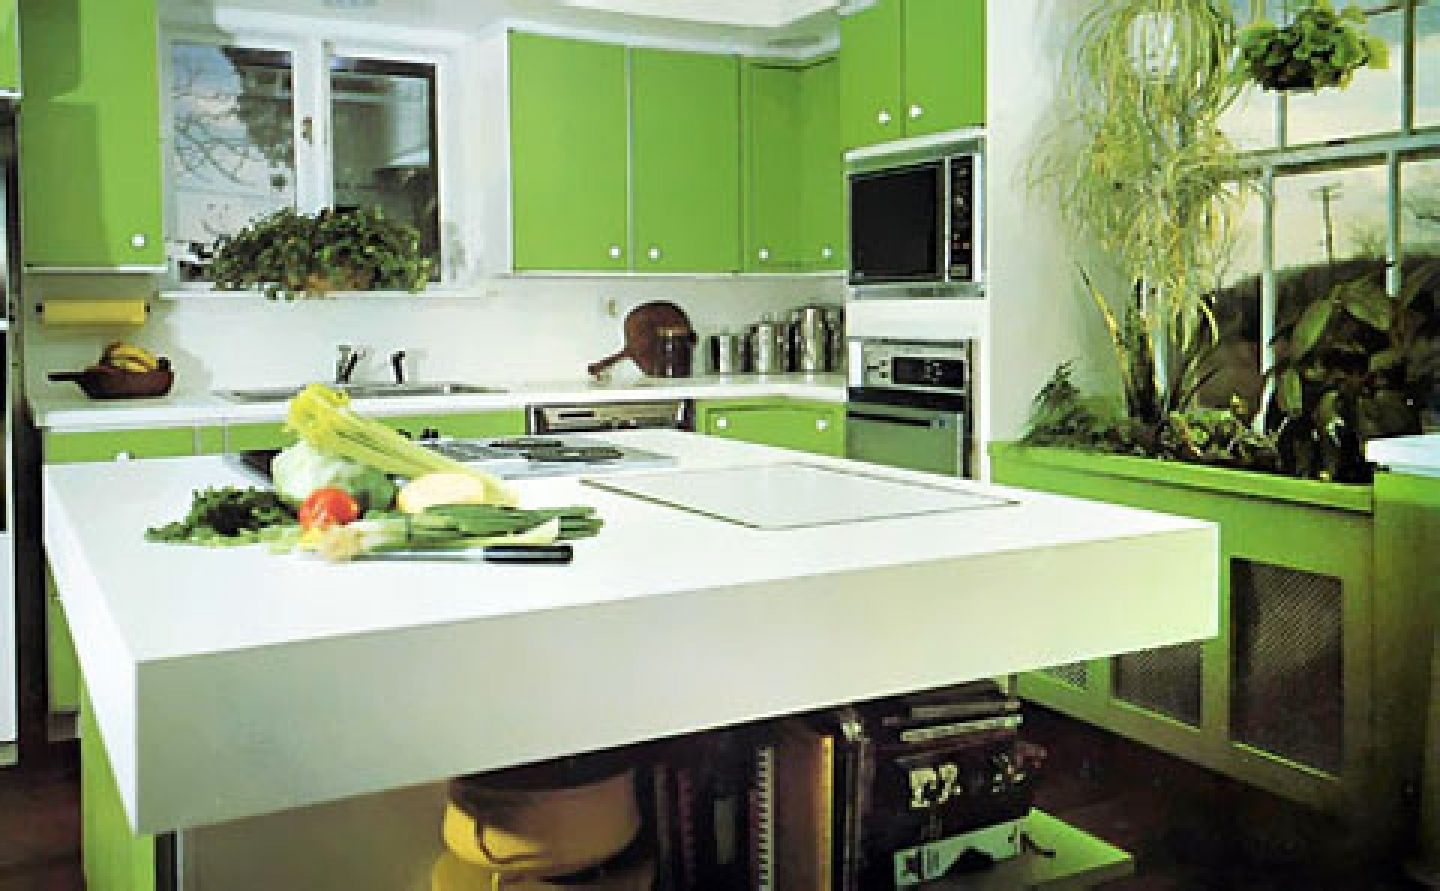 Kitchen 101 creating healthier and greener kitchen for Green kitchen pictures